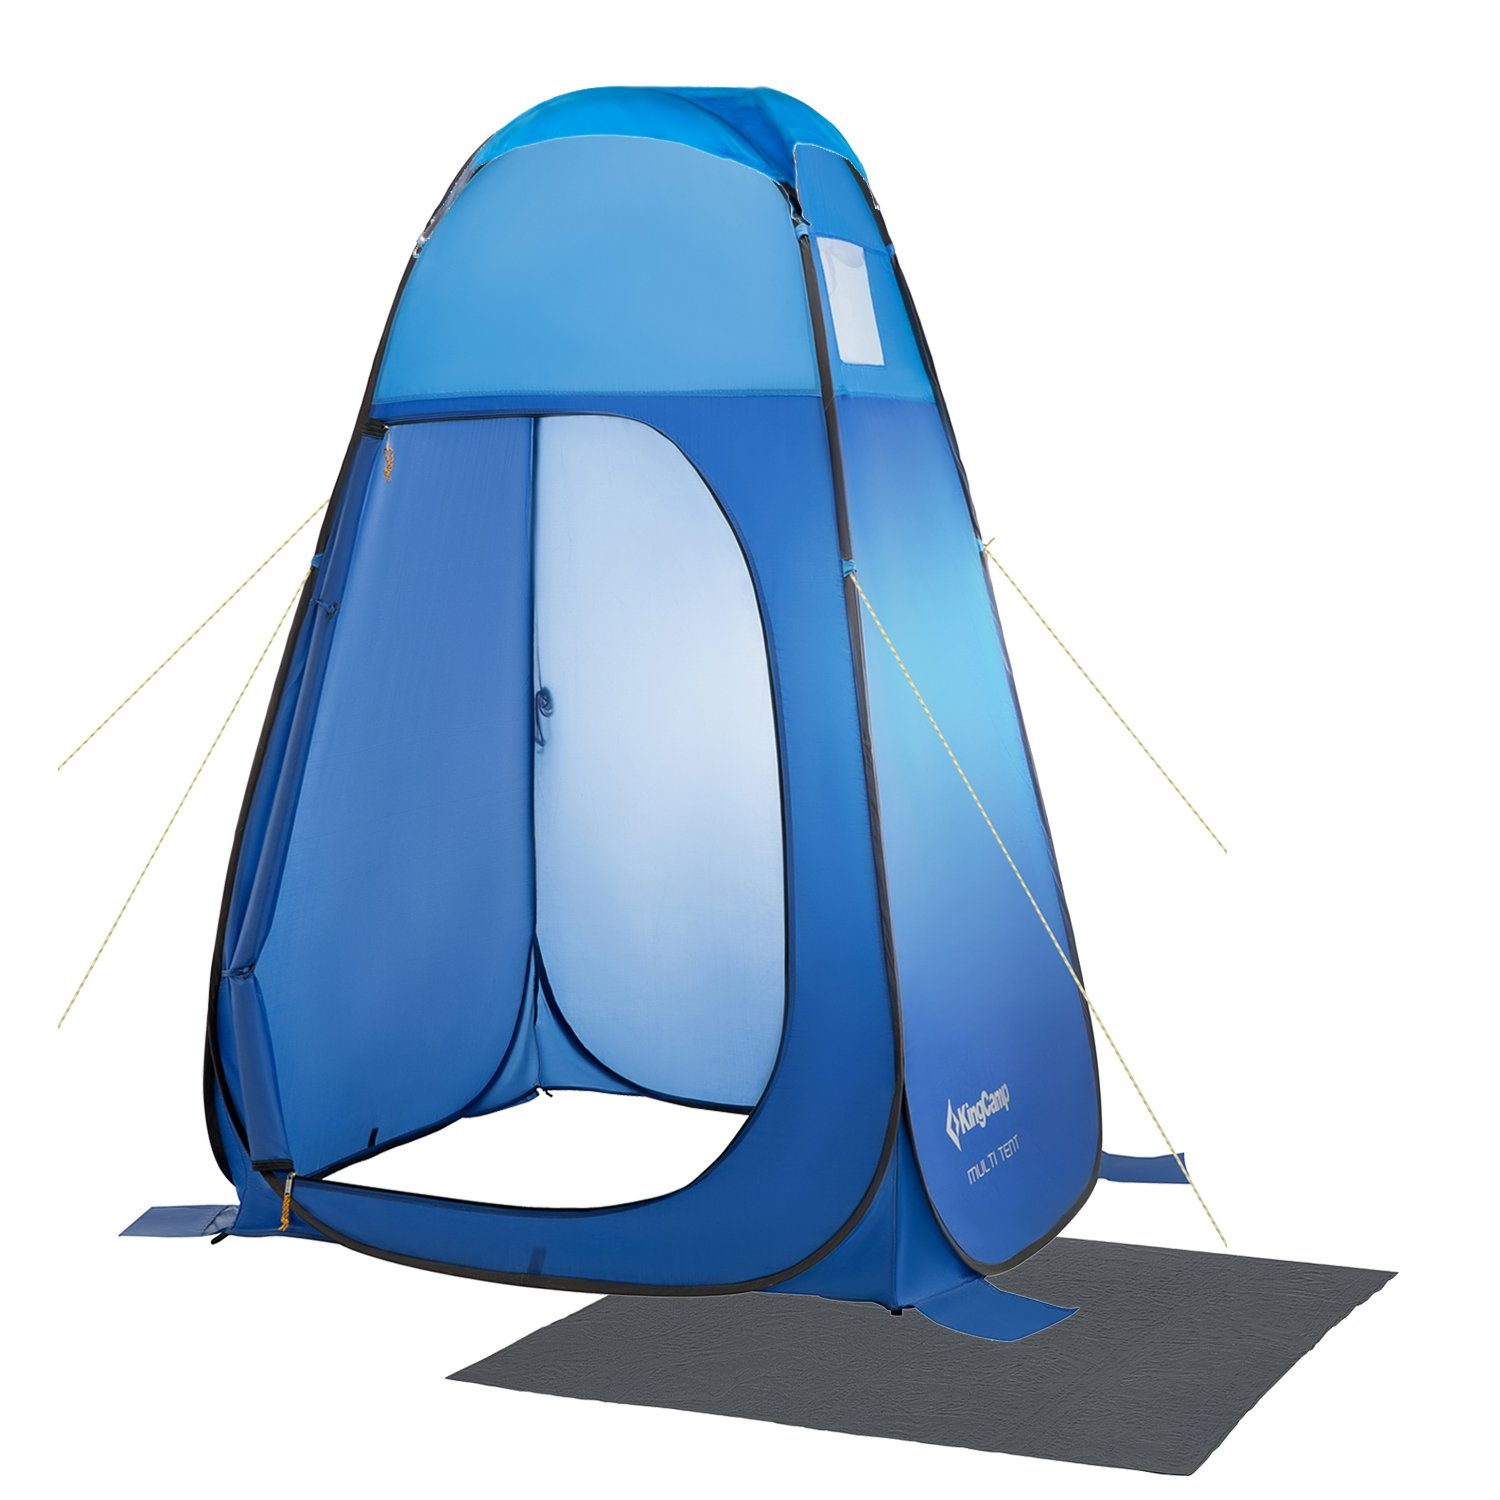 Camping Privacy Shelters | Amazon.com